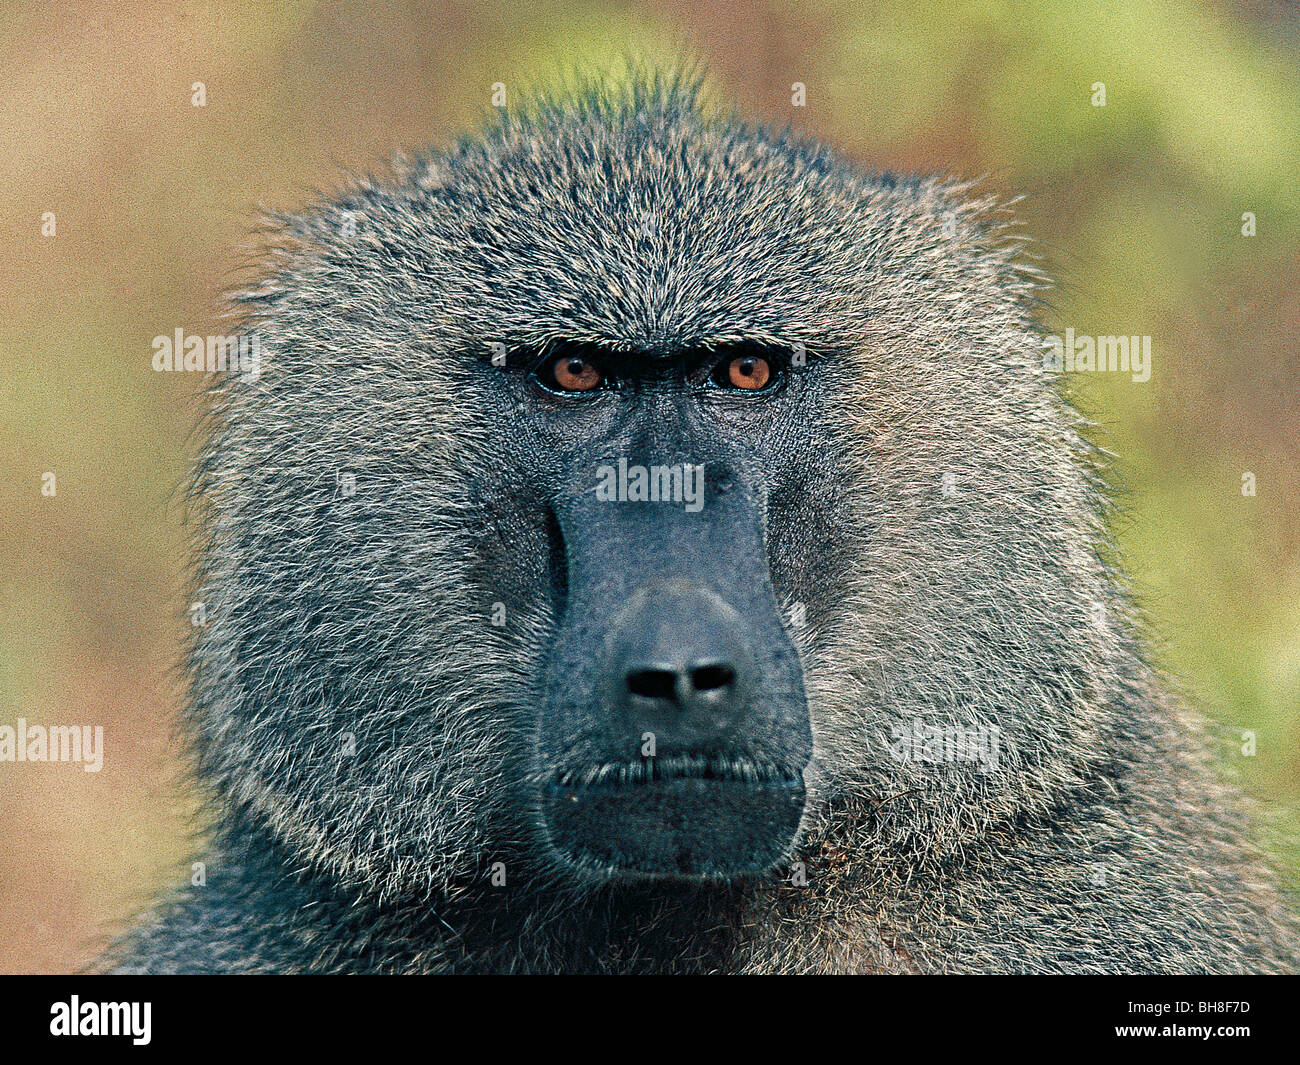 Portrait of male Olive Baboon. Lake Manyara National Park, Tanzania, East Africa. - Stock Image